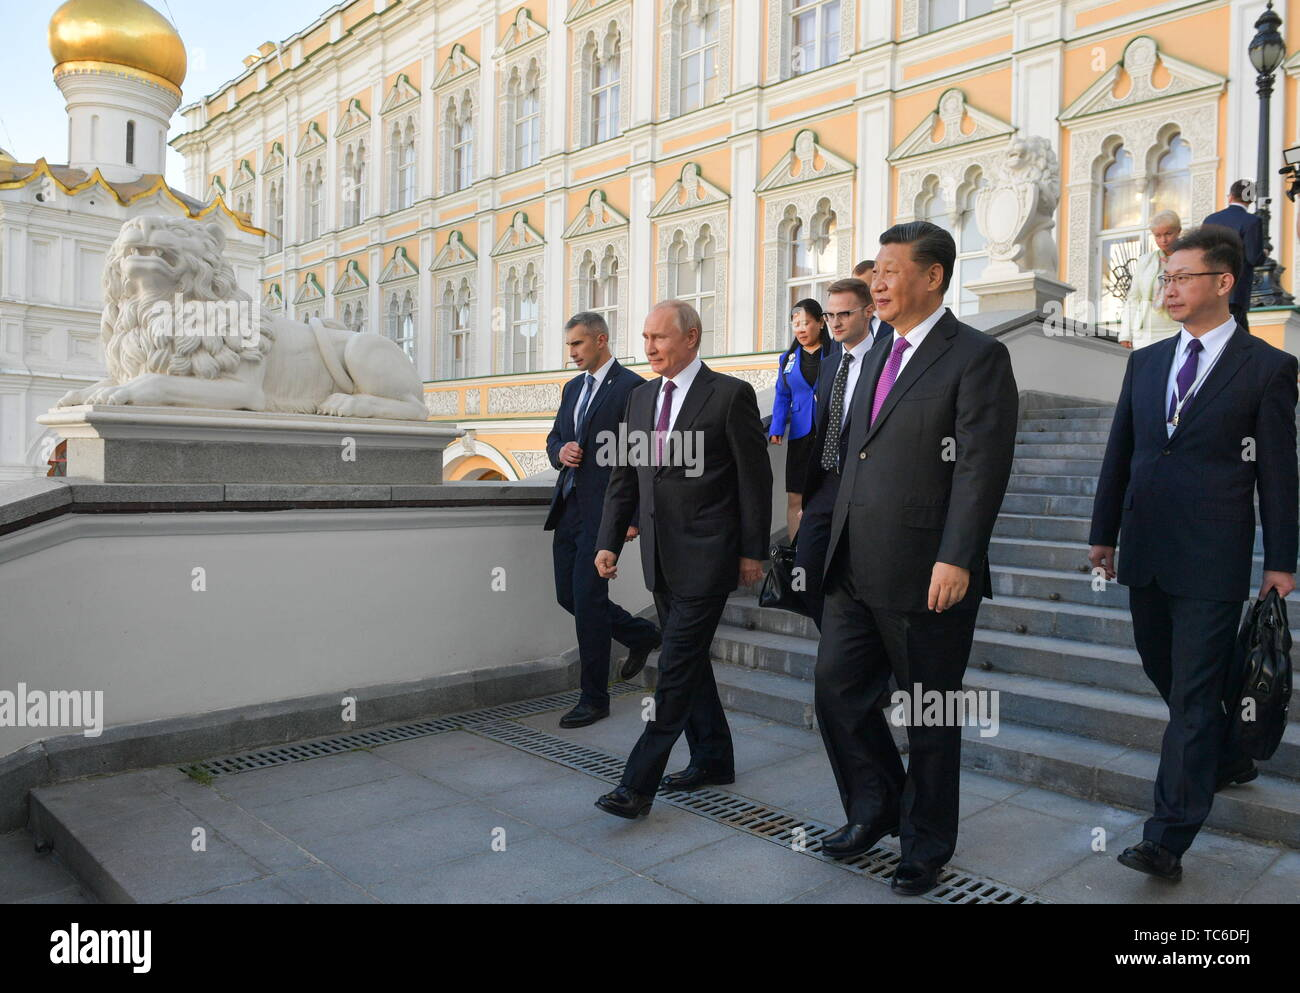 Moscow, Russia. 05th June, 2019. MOSCOW, RUSSIA - JUNE 5, 2019: Russia's President Vladimir Putin (2nd L), China's President Xi Jinping (2nd R) during a meeting at the Moscow Kremlin. Alexei Druzhinin/Russian Presidential Press and Information Office/TASS Credit: ITAR-TASS News Agency/Alamy Live News - Stock Image